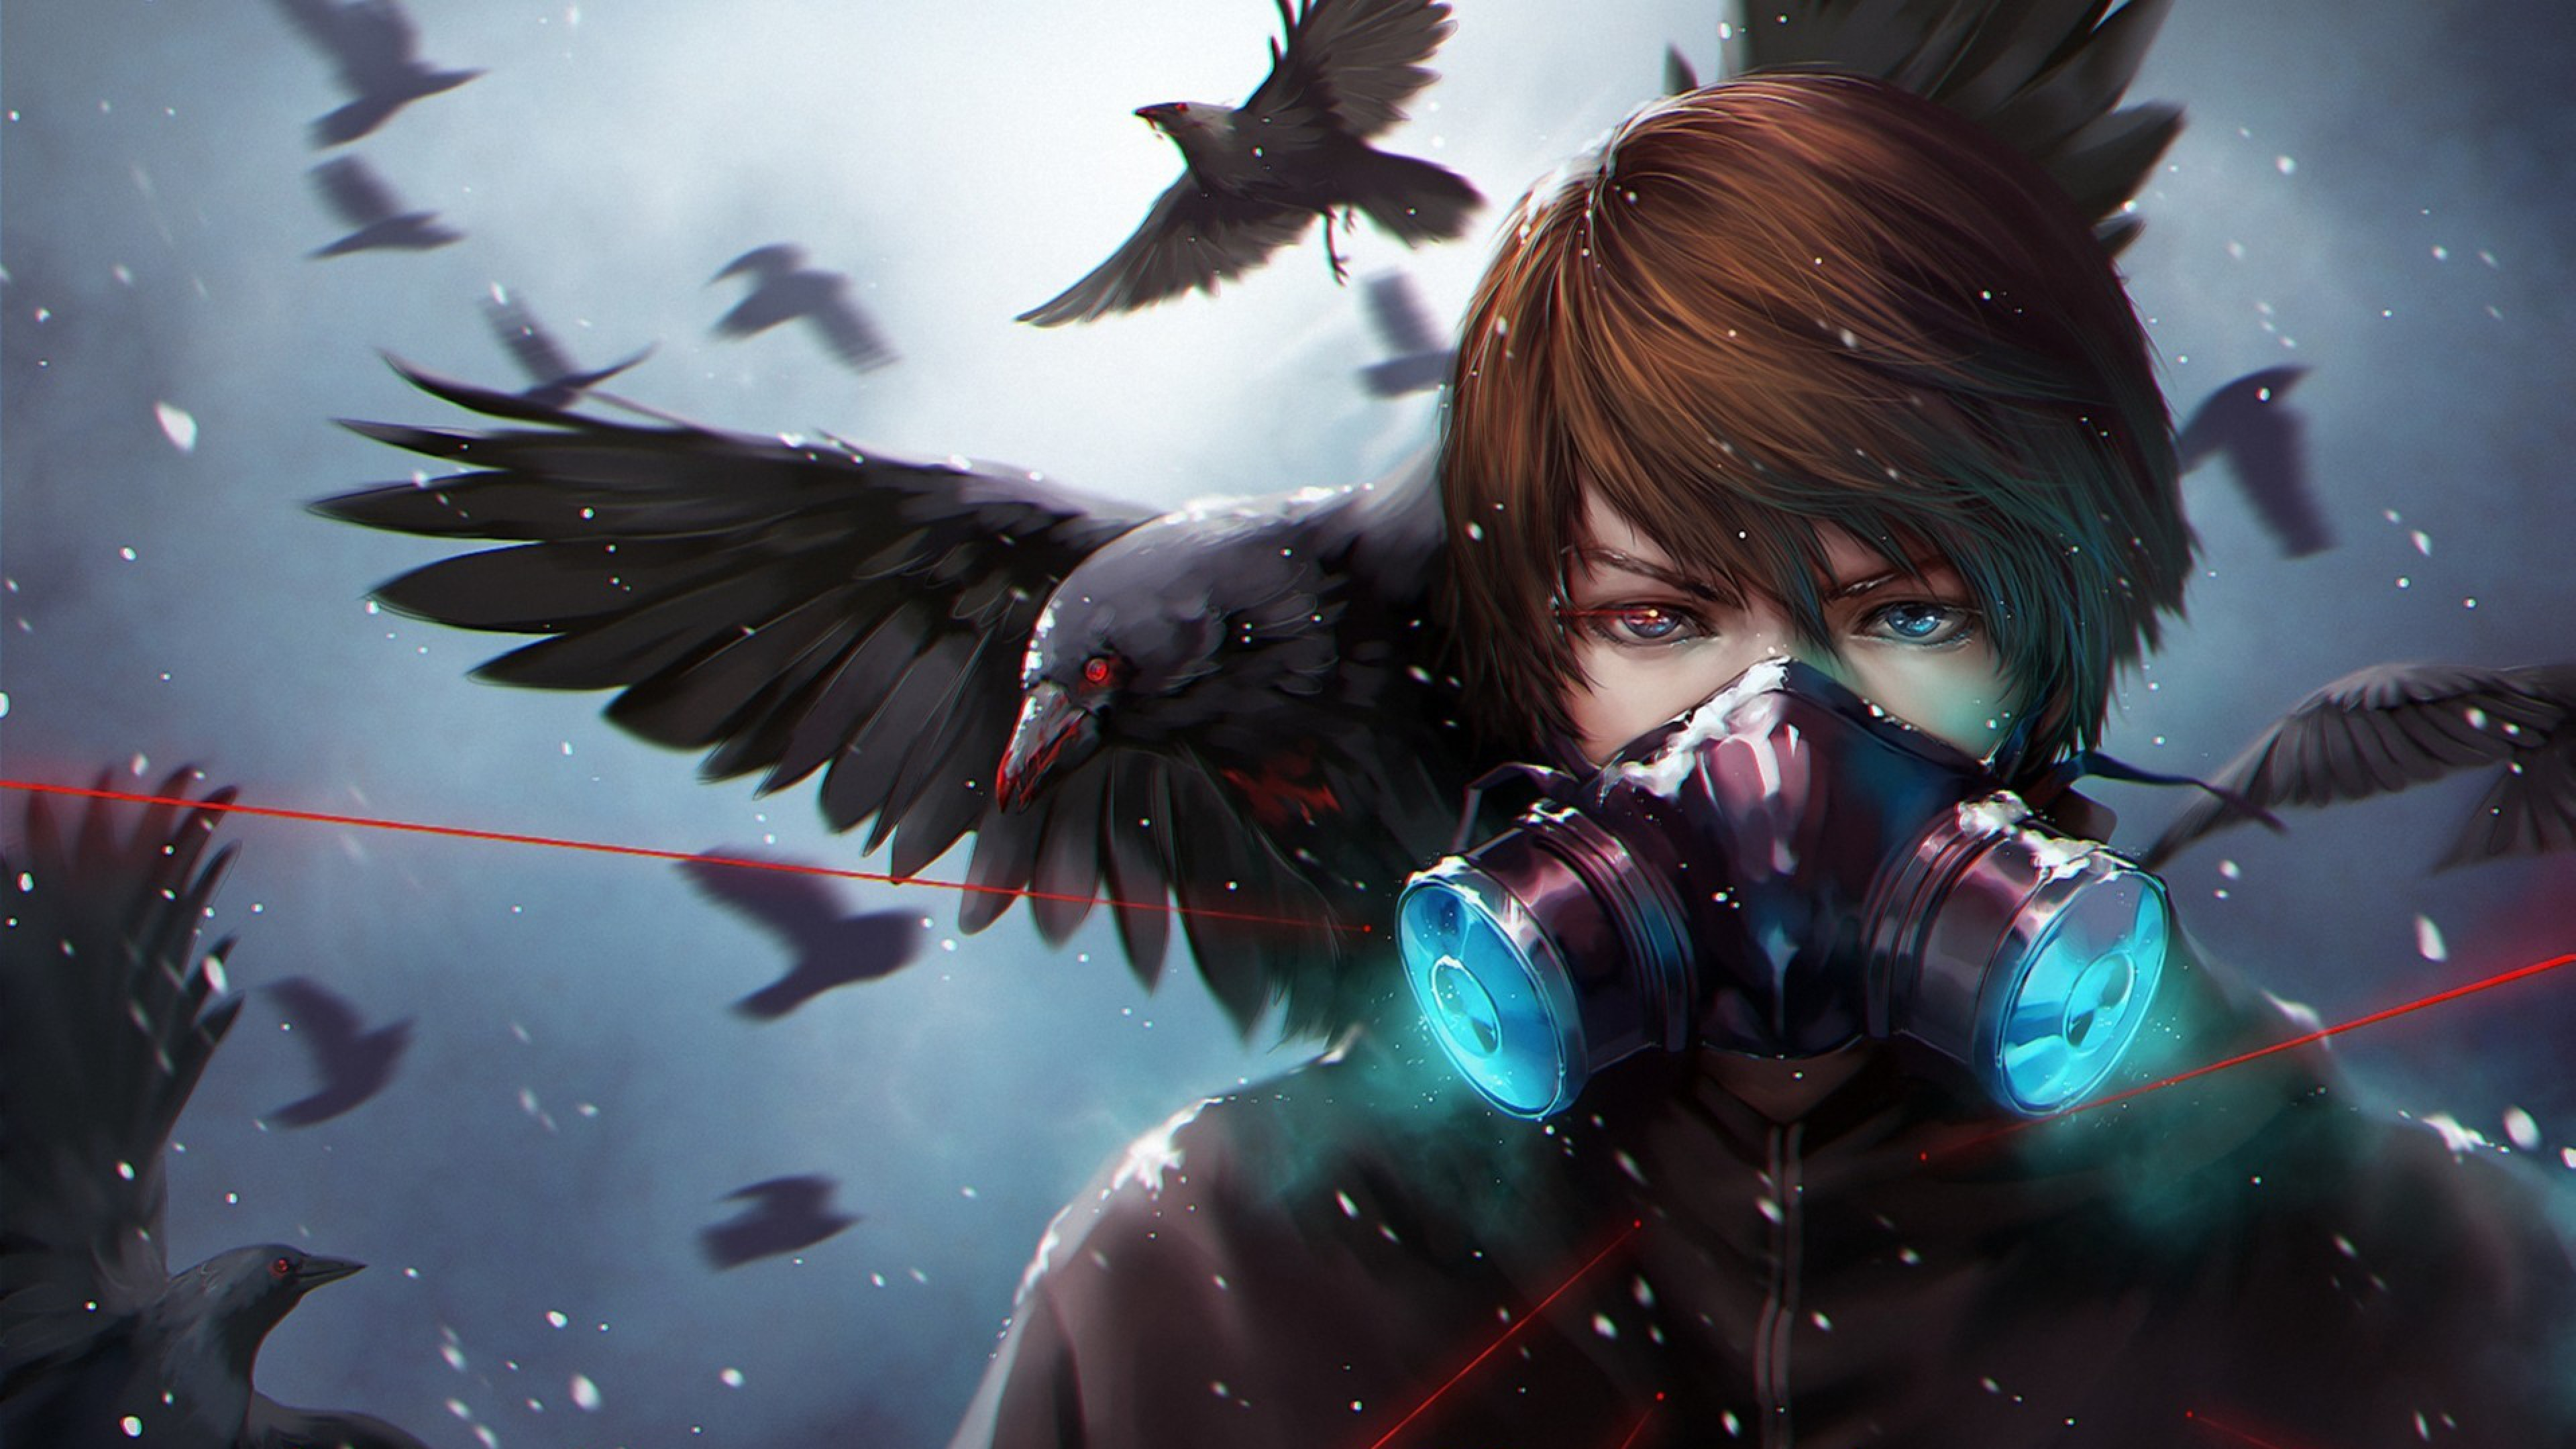 Epic anime wallpapers 60 images - Epic wallpapers 2560x1440 ...